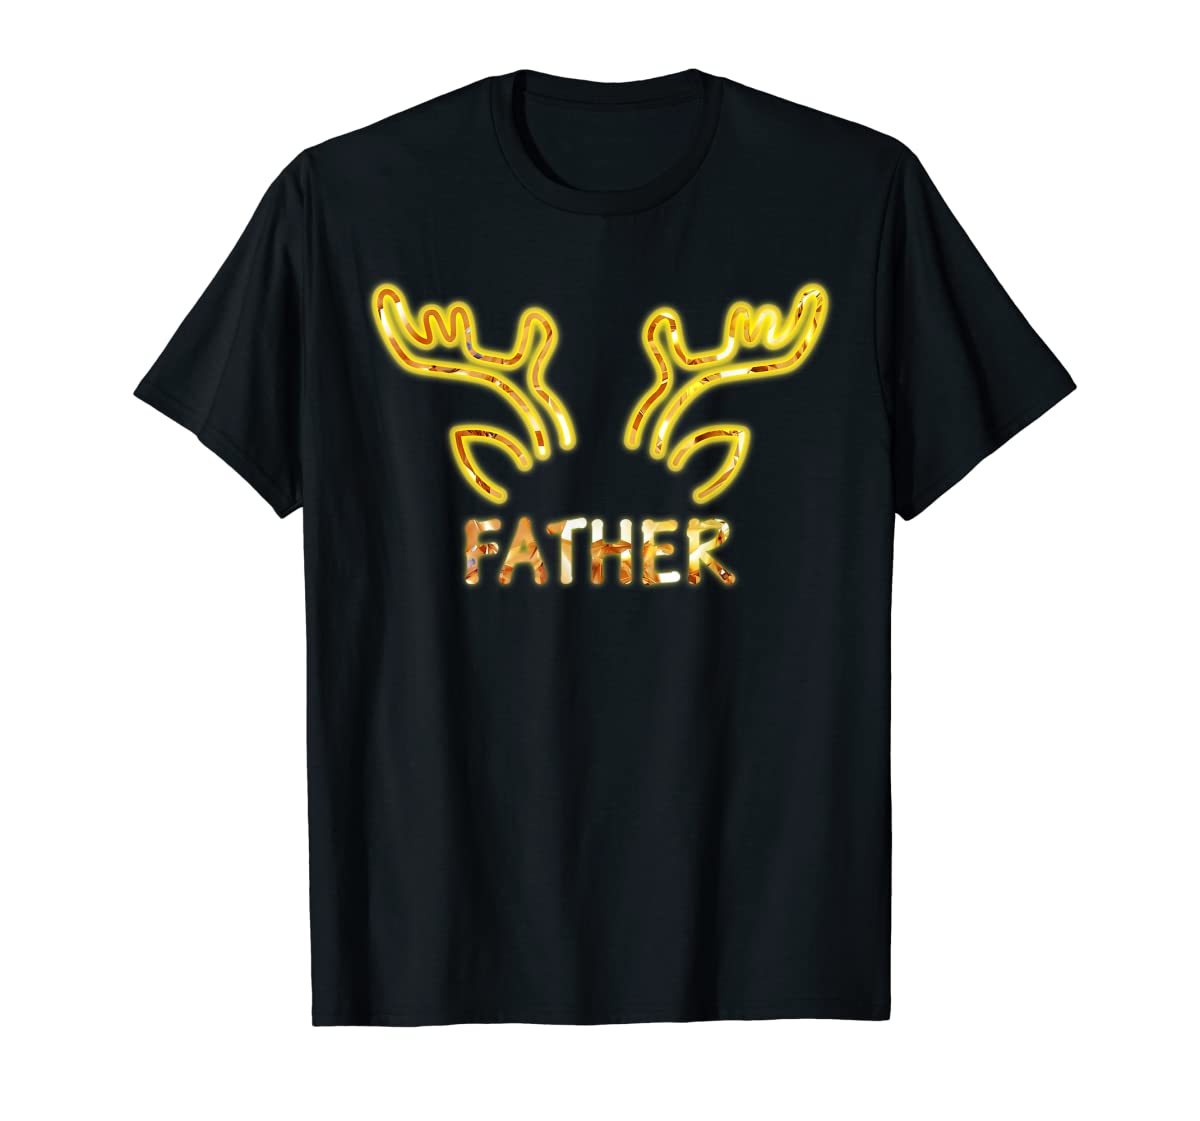 Father Reindeer Matching Family Christmas T-Shirt T-Shirt-Men's T-Shirt-Black